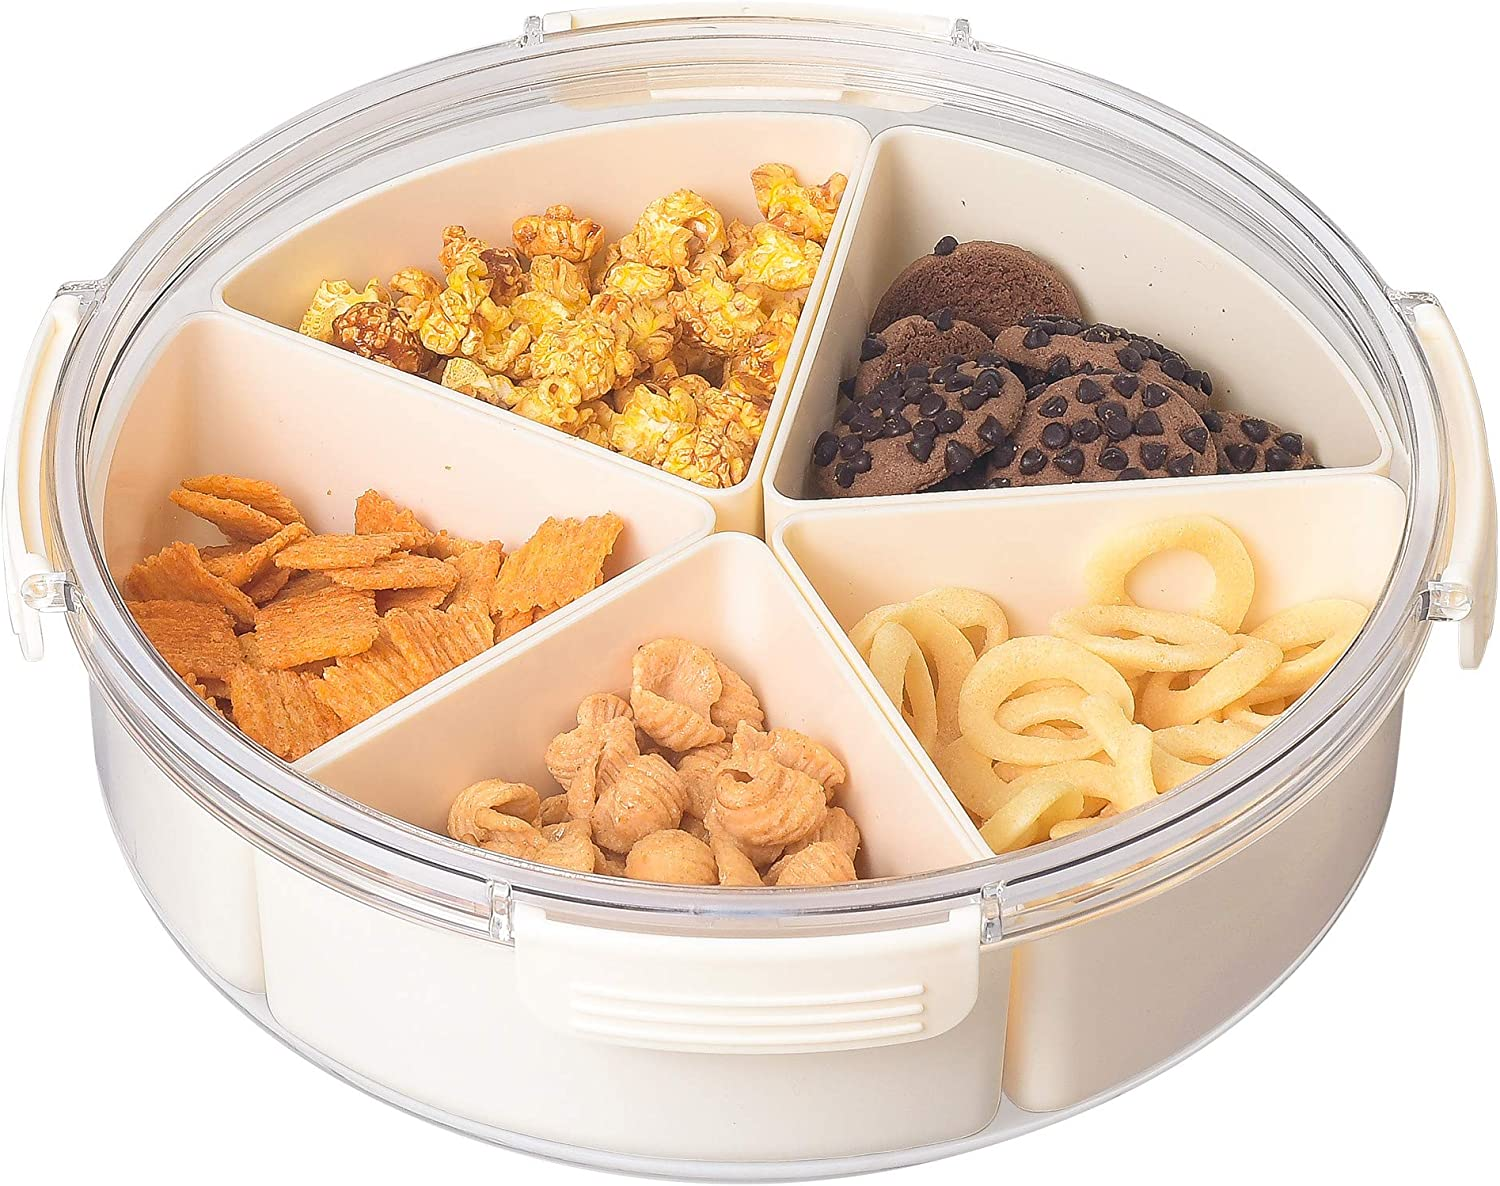 Beige Round Plastic Divided Serving Tray with Lids, 5 Individual Dishes Food Storage Containers, Serving Platter for Snack, Fruit, Veggie, Candies, etc.